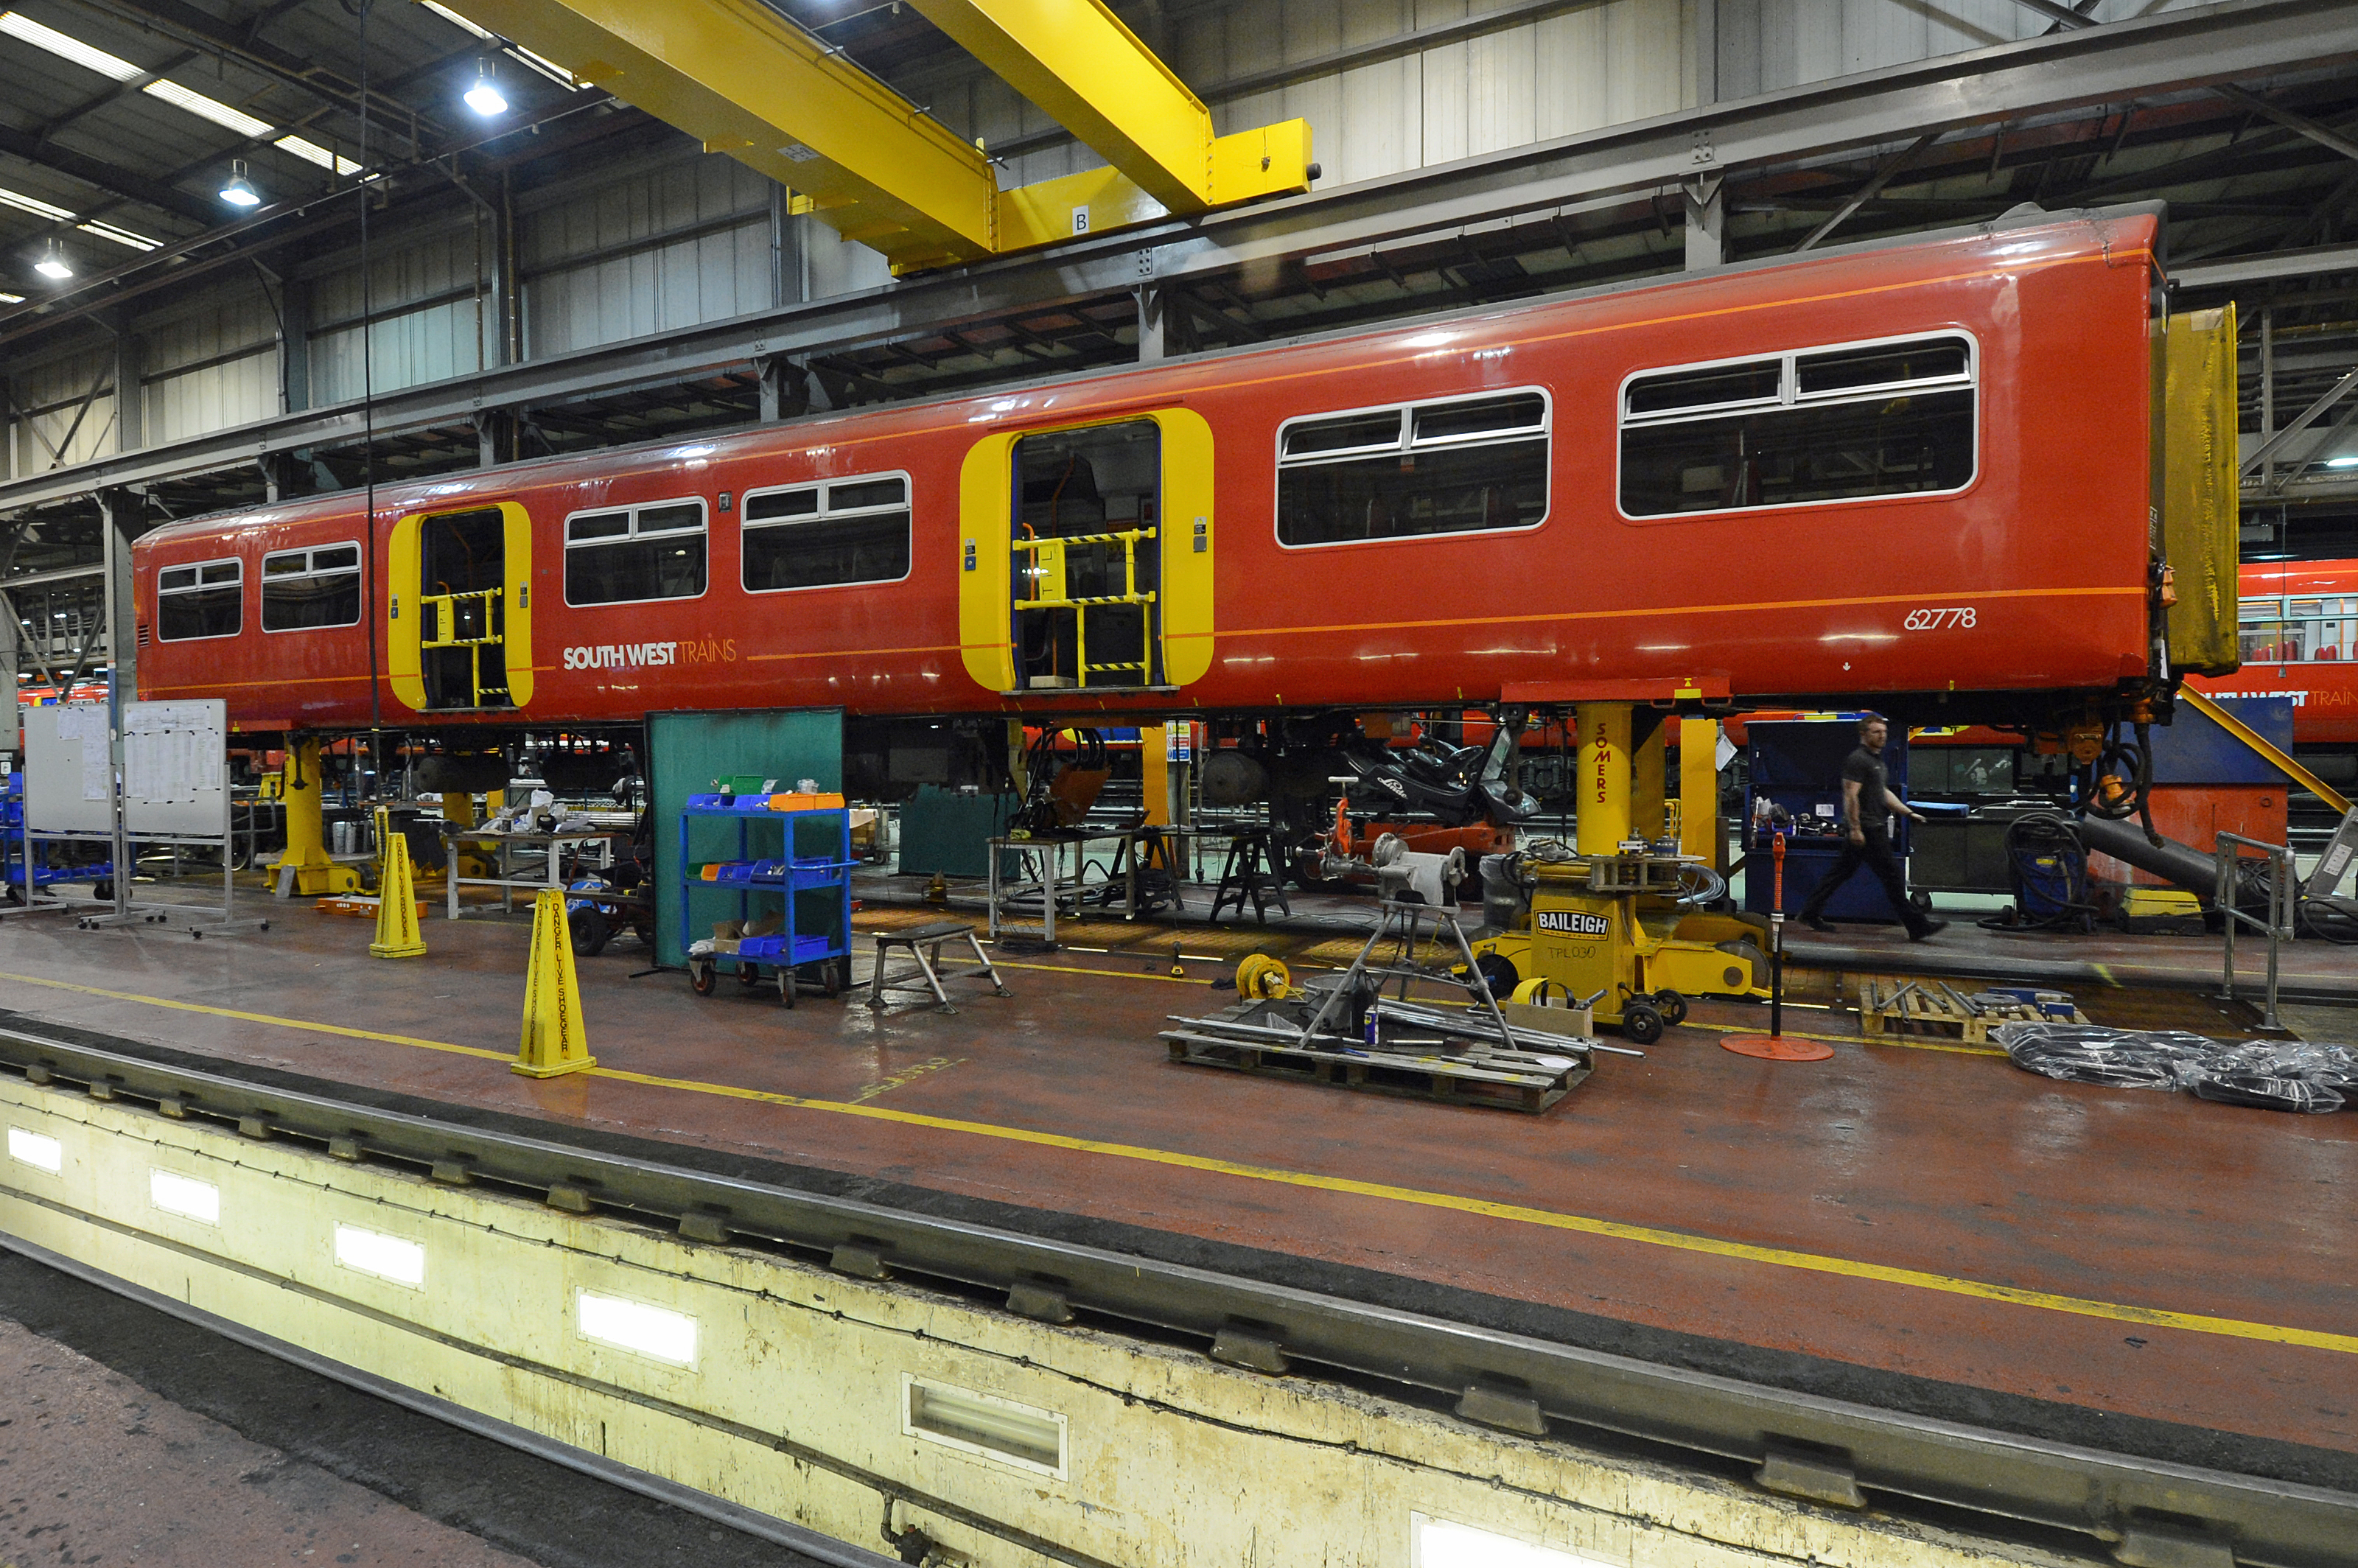 Fitting the AC traction package to 62778 from 5870